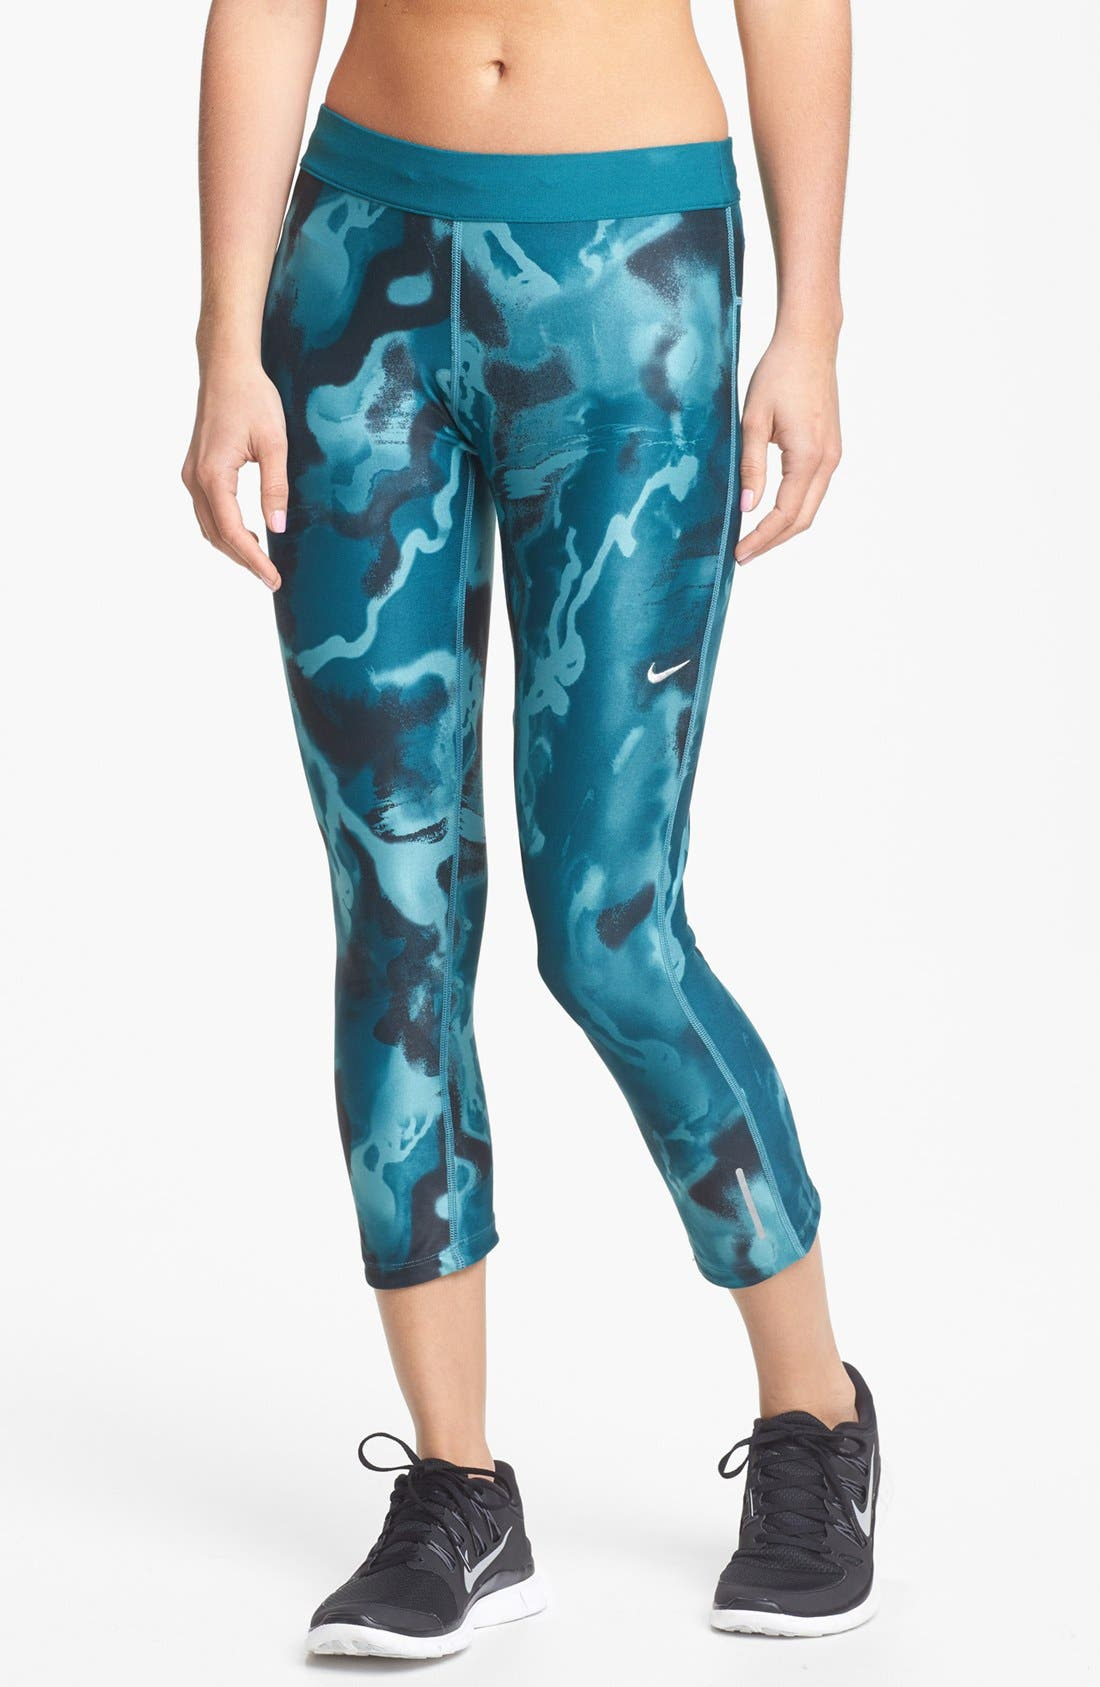 Alternate Image 1 Selected - Nike 'Twisty' Print Crop Running Pants